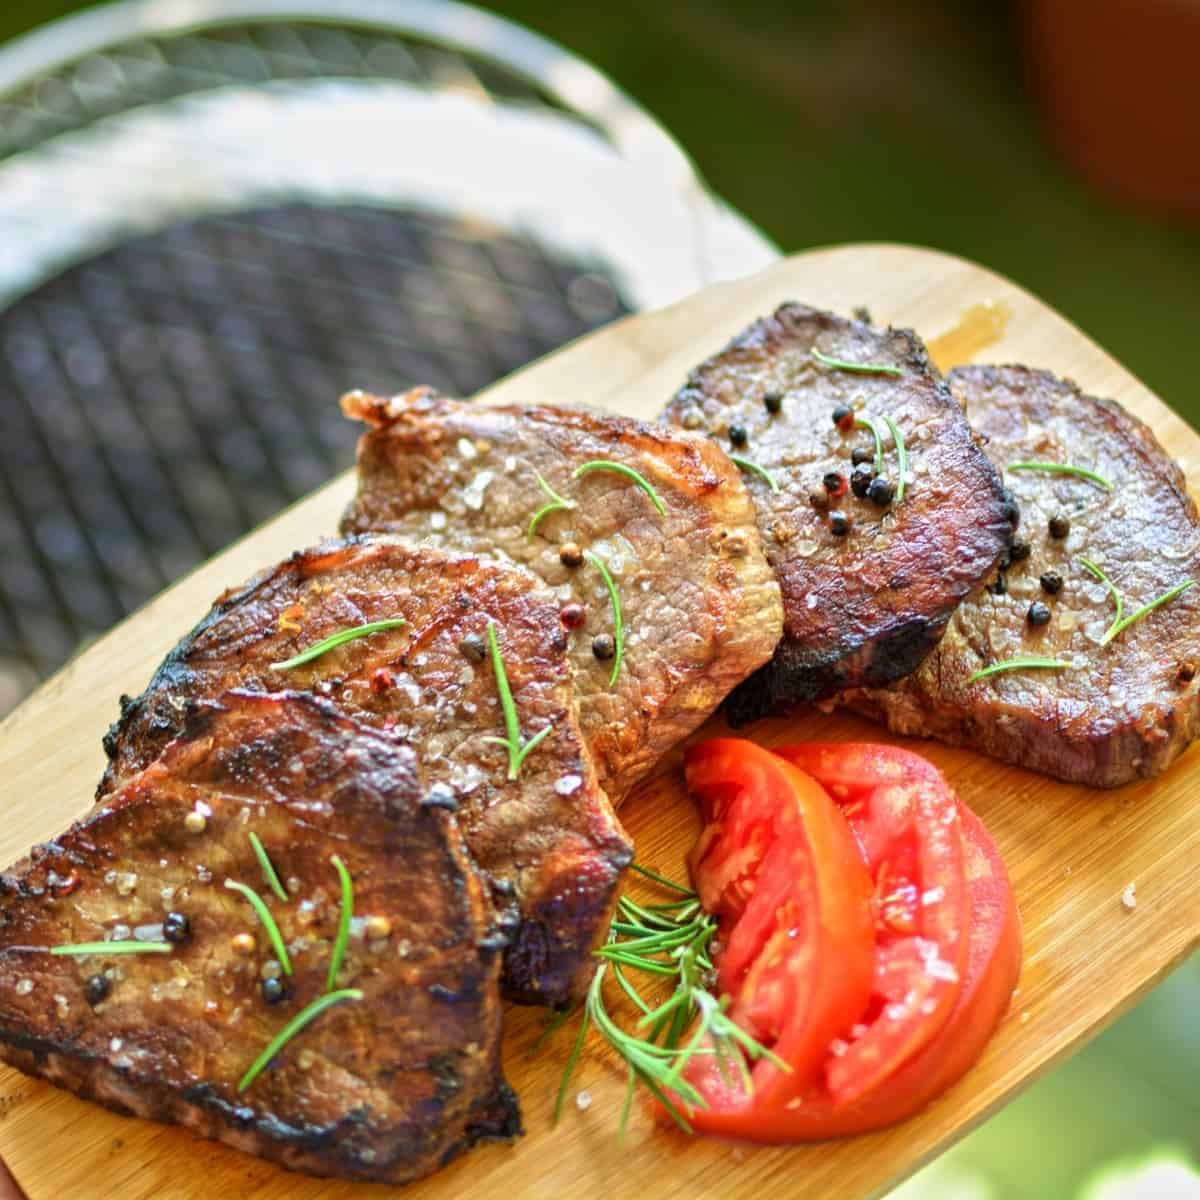 grilled meat lazy dinner idea for making healthy recipes for weight loss